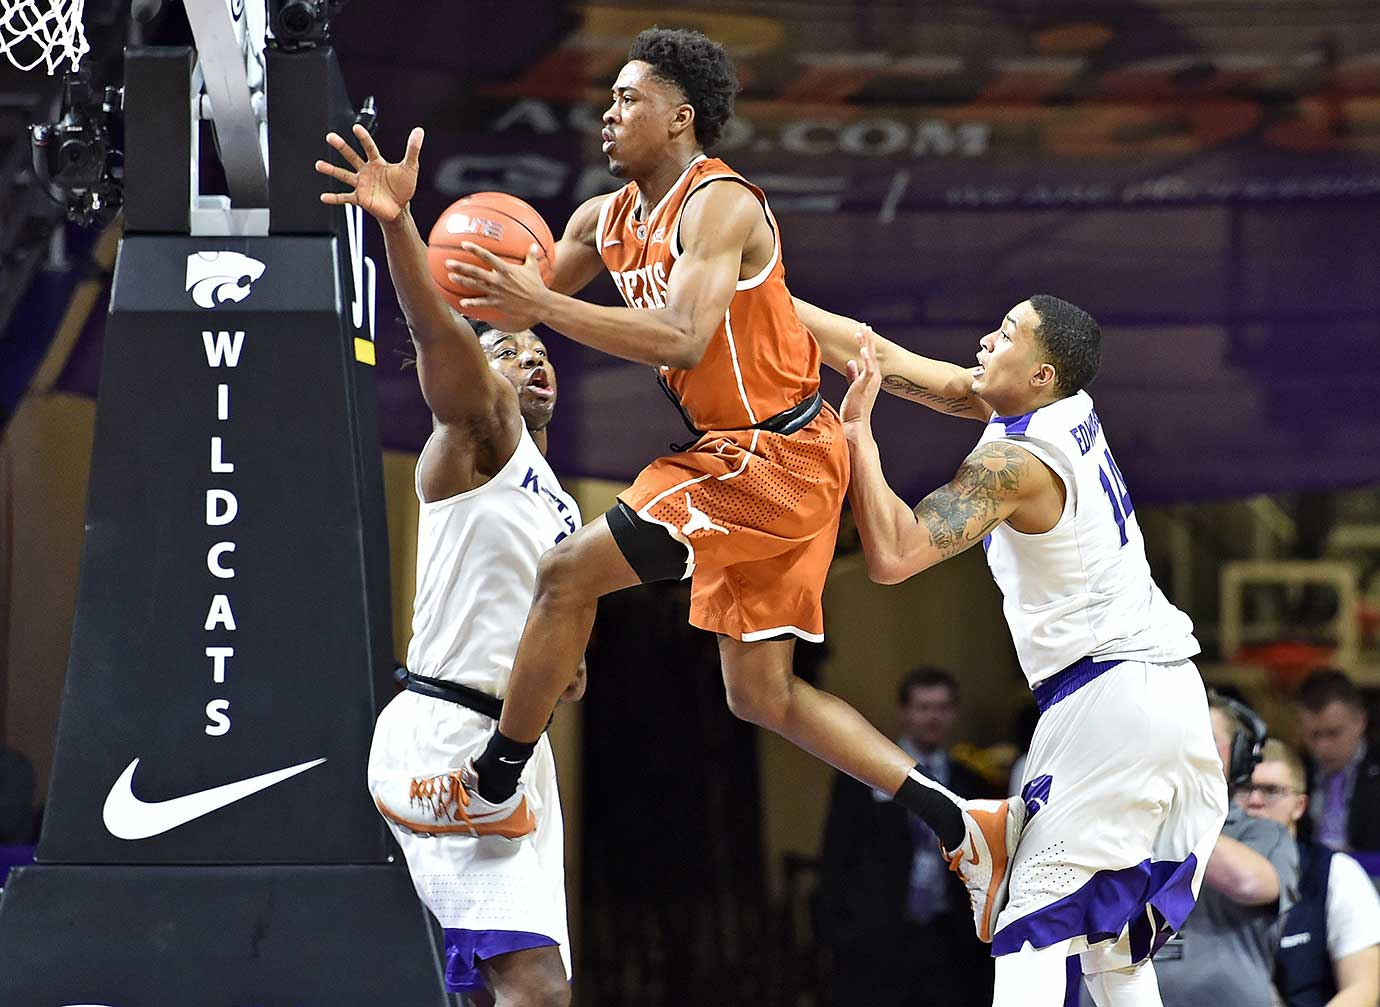 Isaiah Taylor of the Texas Longhorns drives into the lane against Kansas State during a 71-70 victory.